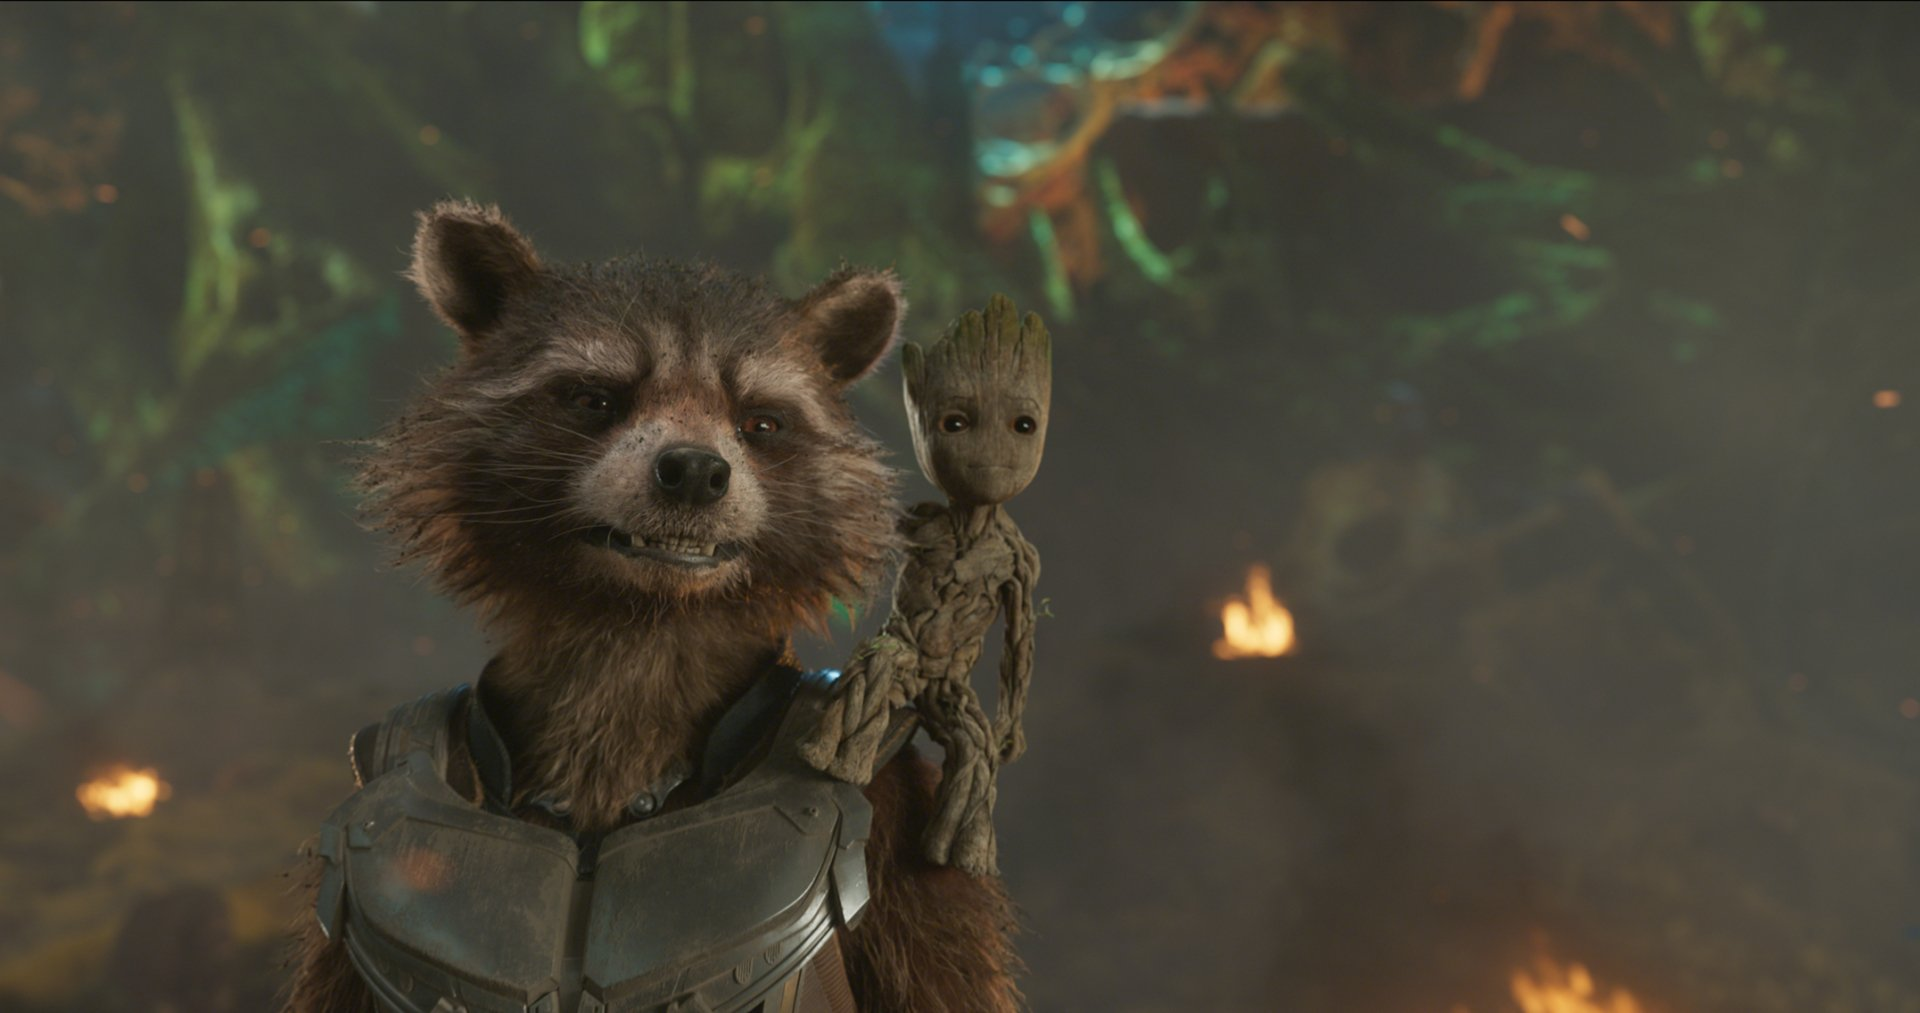 Movie - Guardians of the Galaxy Vol. 2  Rocket Raccoon Groot Wallpaper